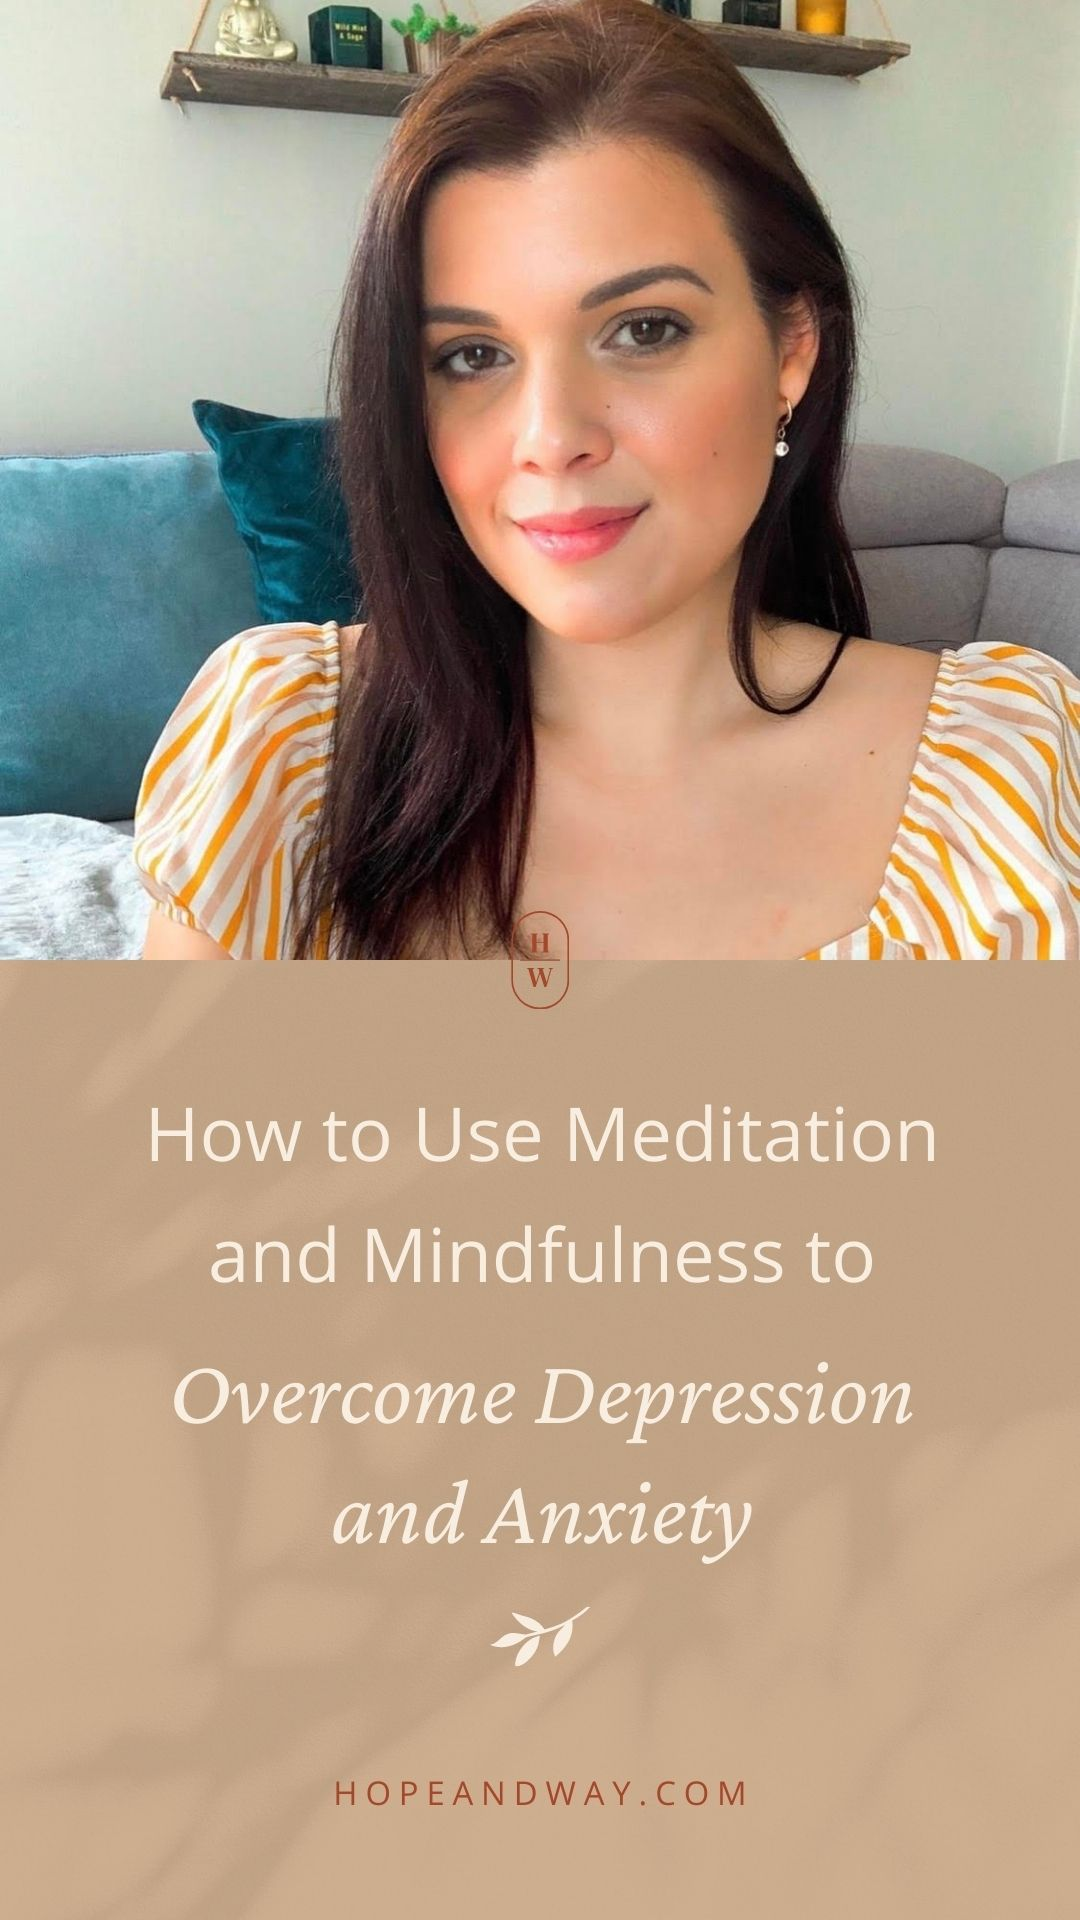 How to Use Meditation and Mindfulness to Overcome Depression and Anxiety - Interview with Ana Martins